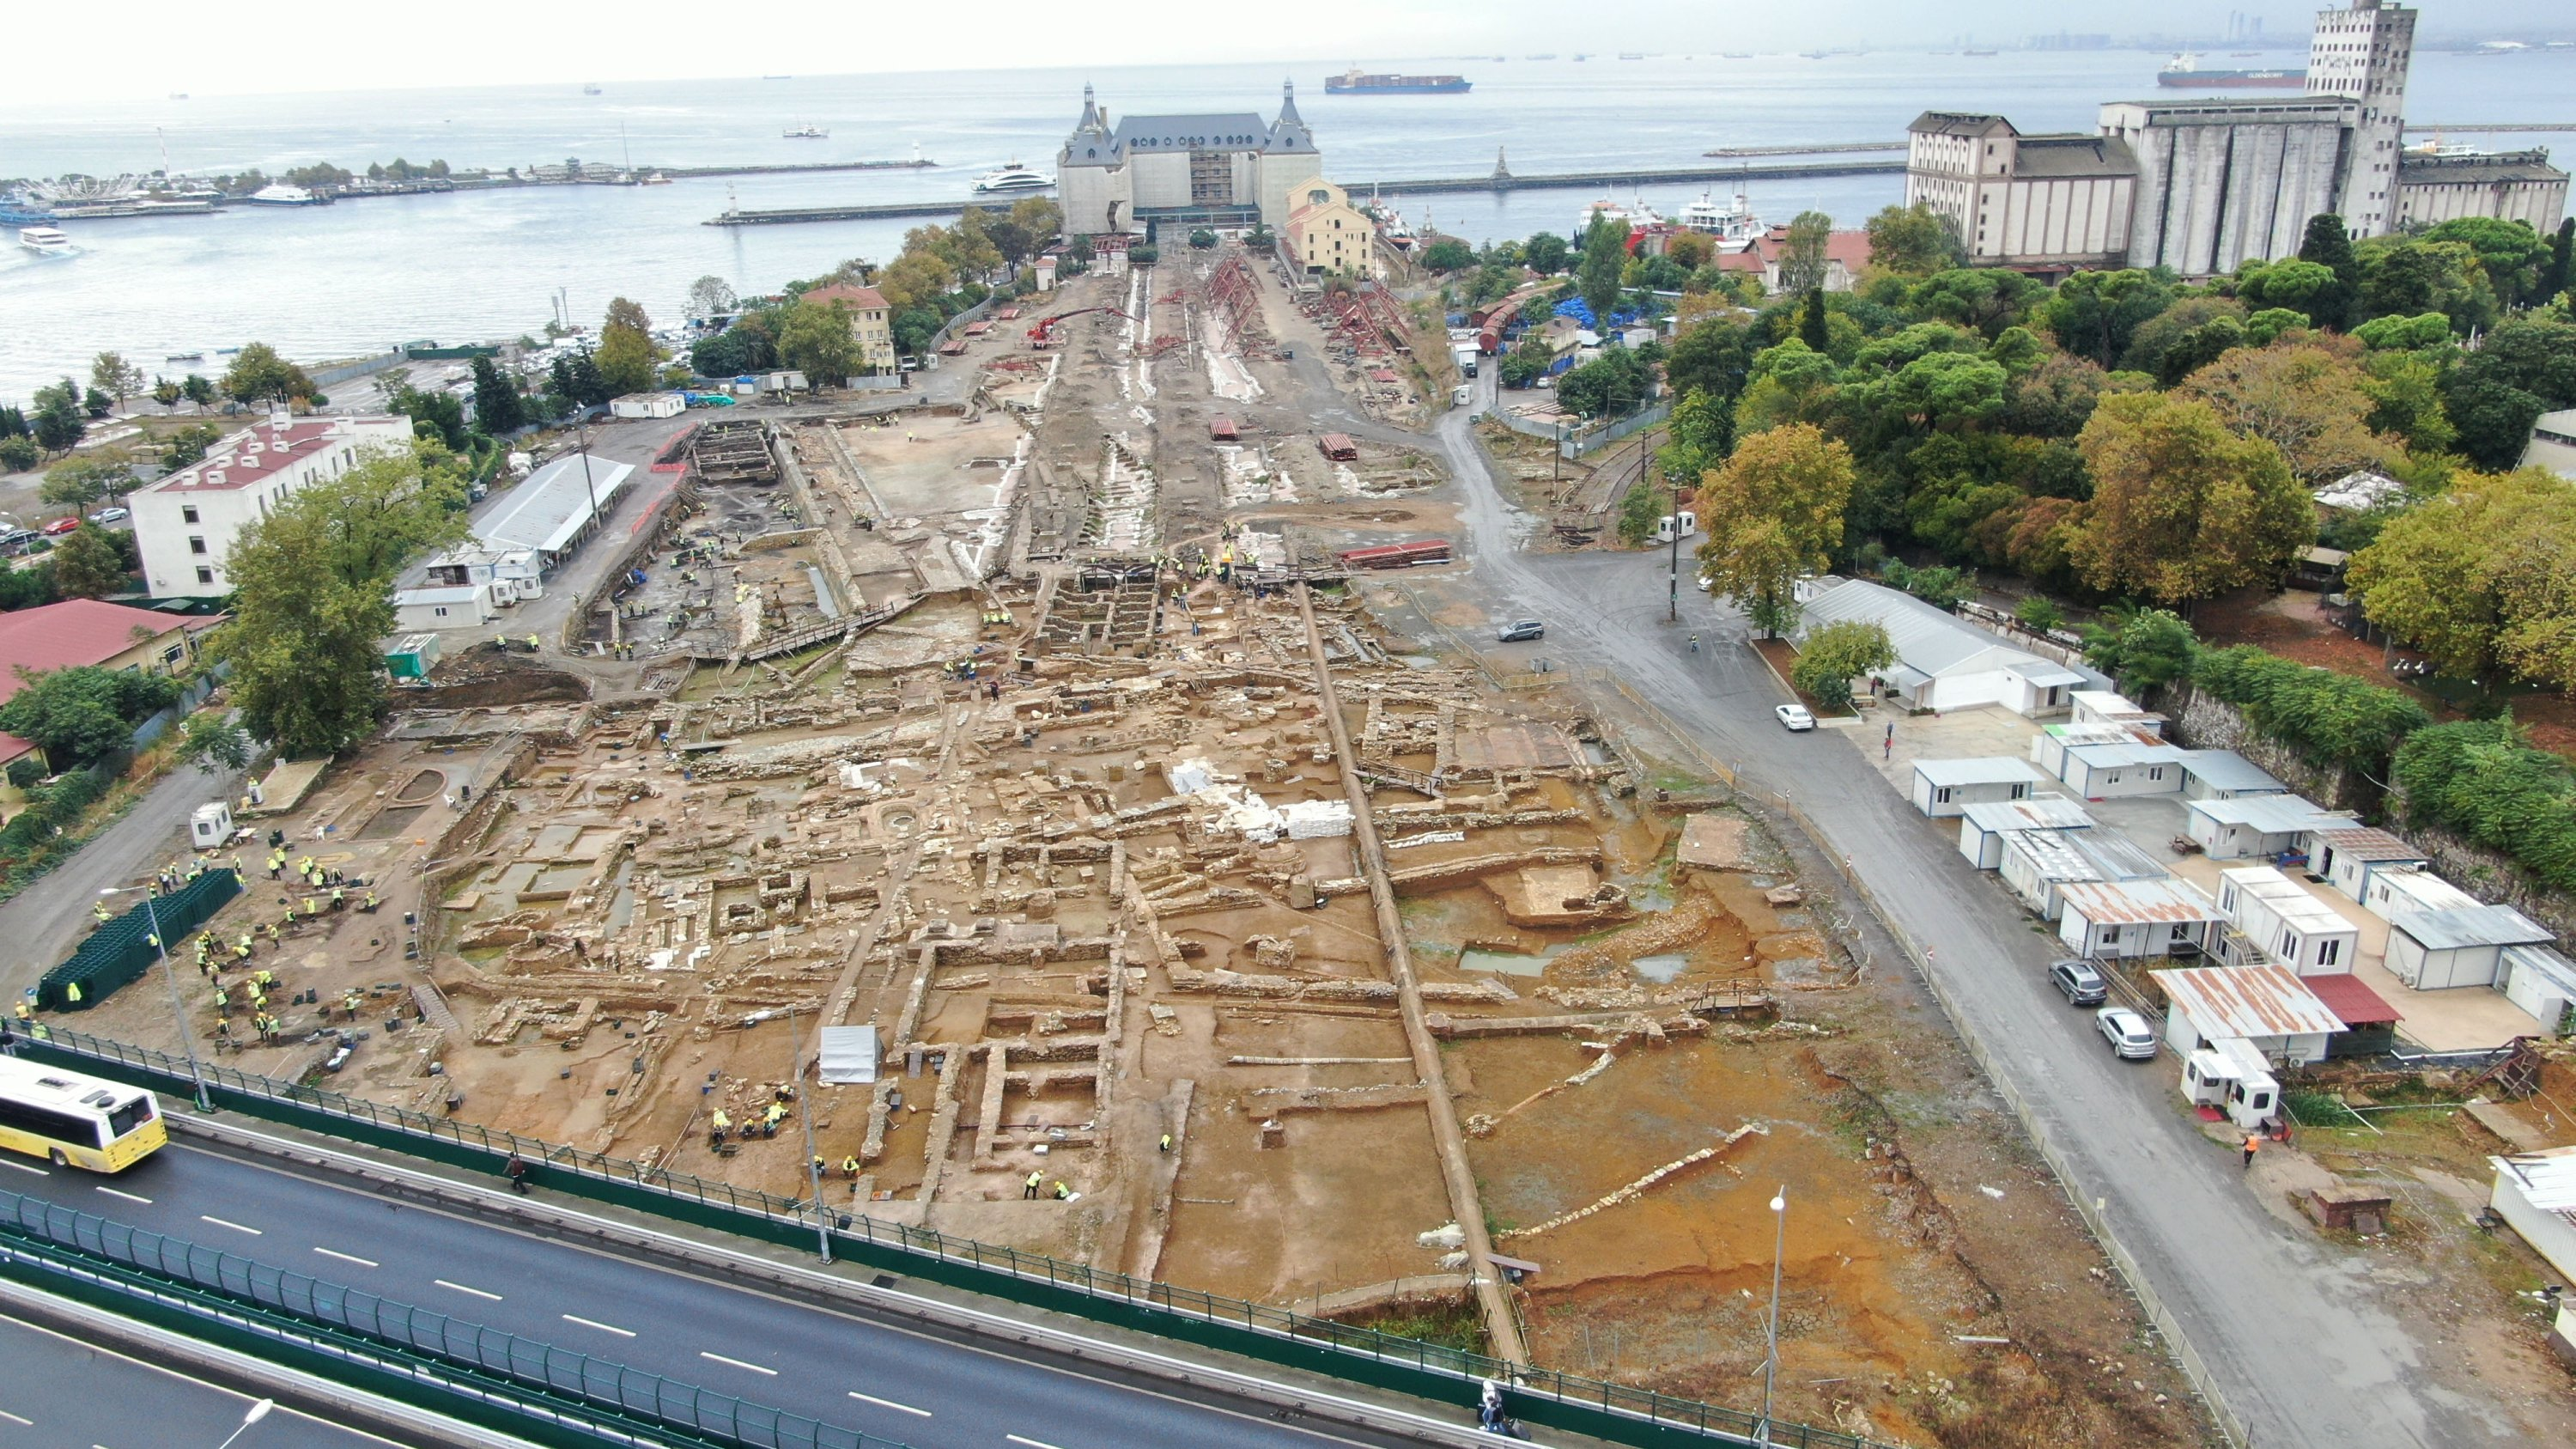 Ancient artifacts are seen at the Haydarpaşa excavation area in Kadıköy, Istanbul, on Oct. 12, 2021. (DHA Photo)